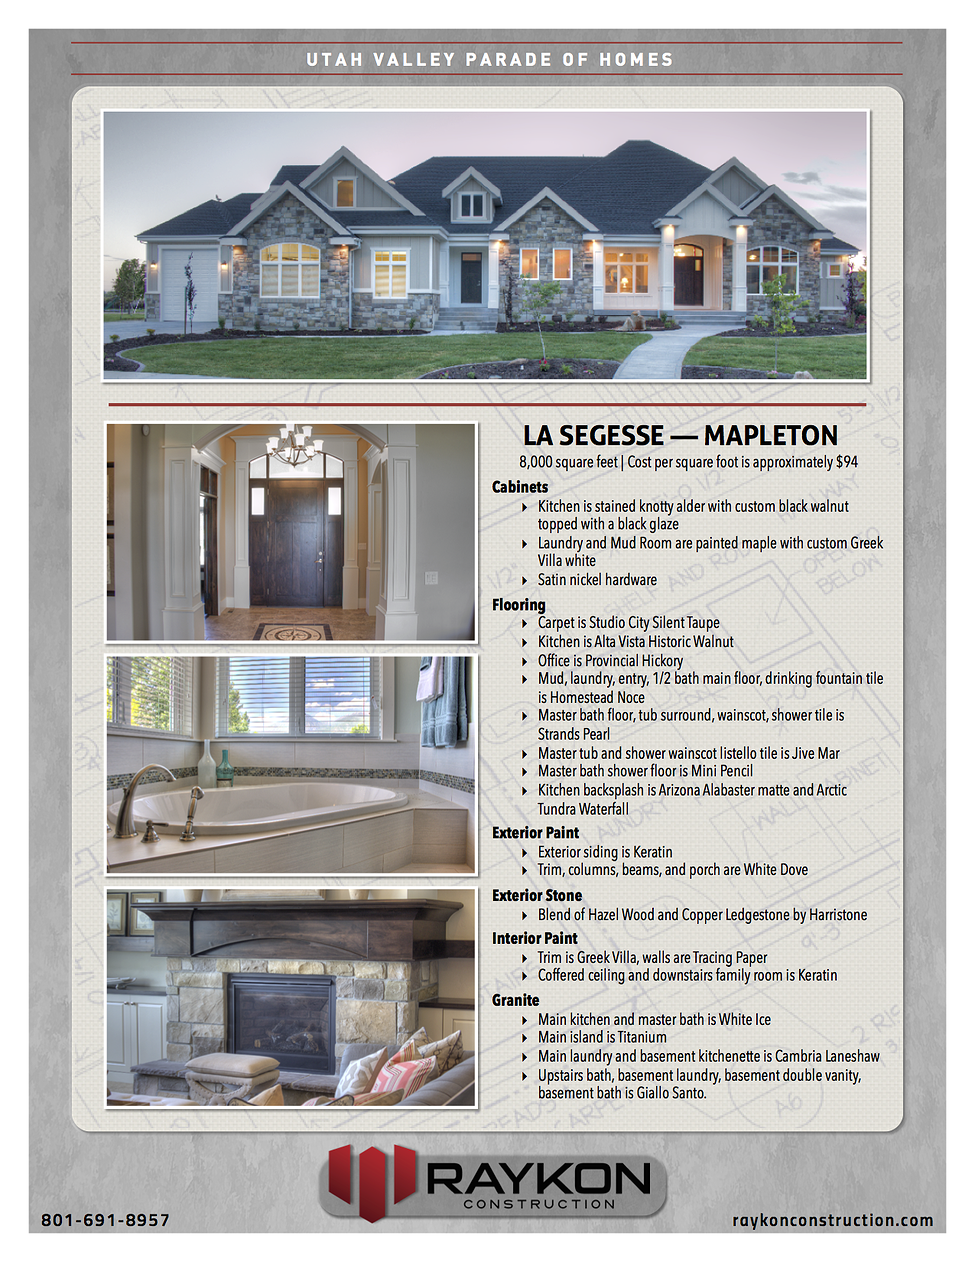 Raykon Construction Utah Home Builders Parade Of Homes Build Your Dream Home